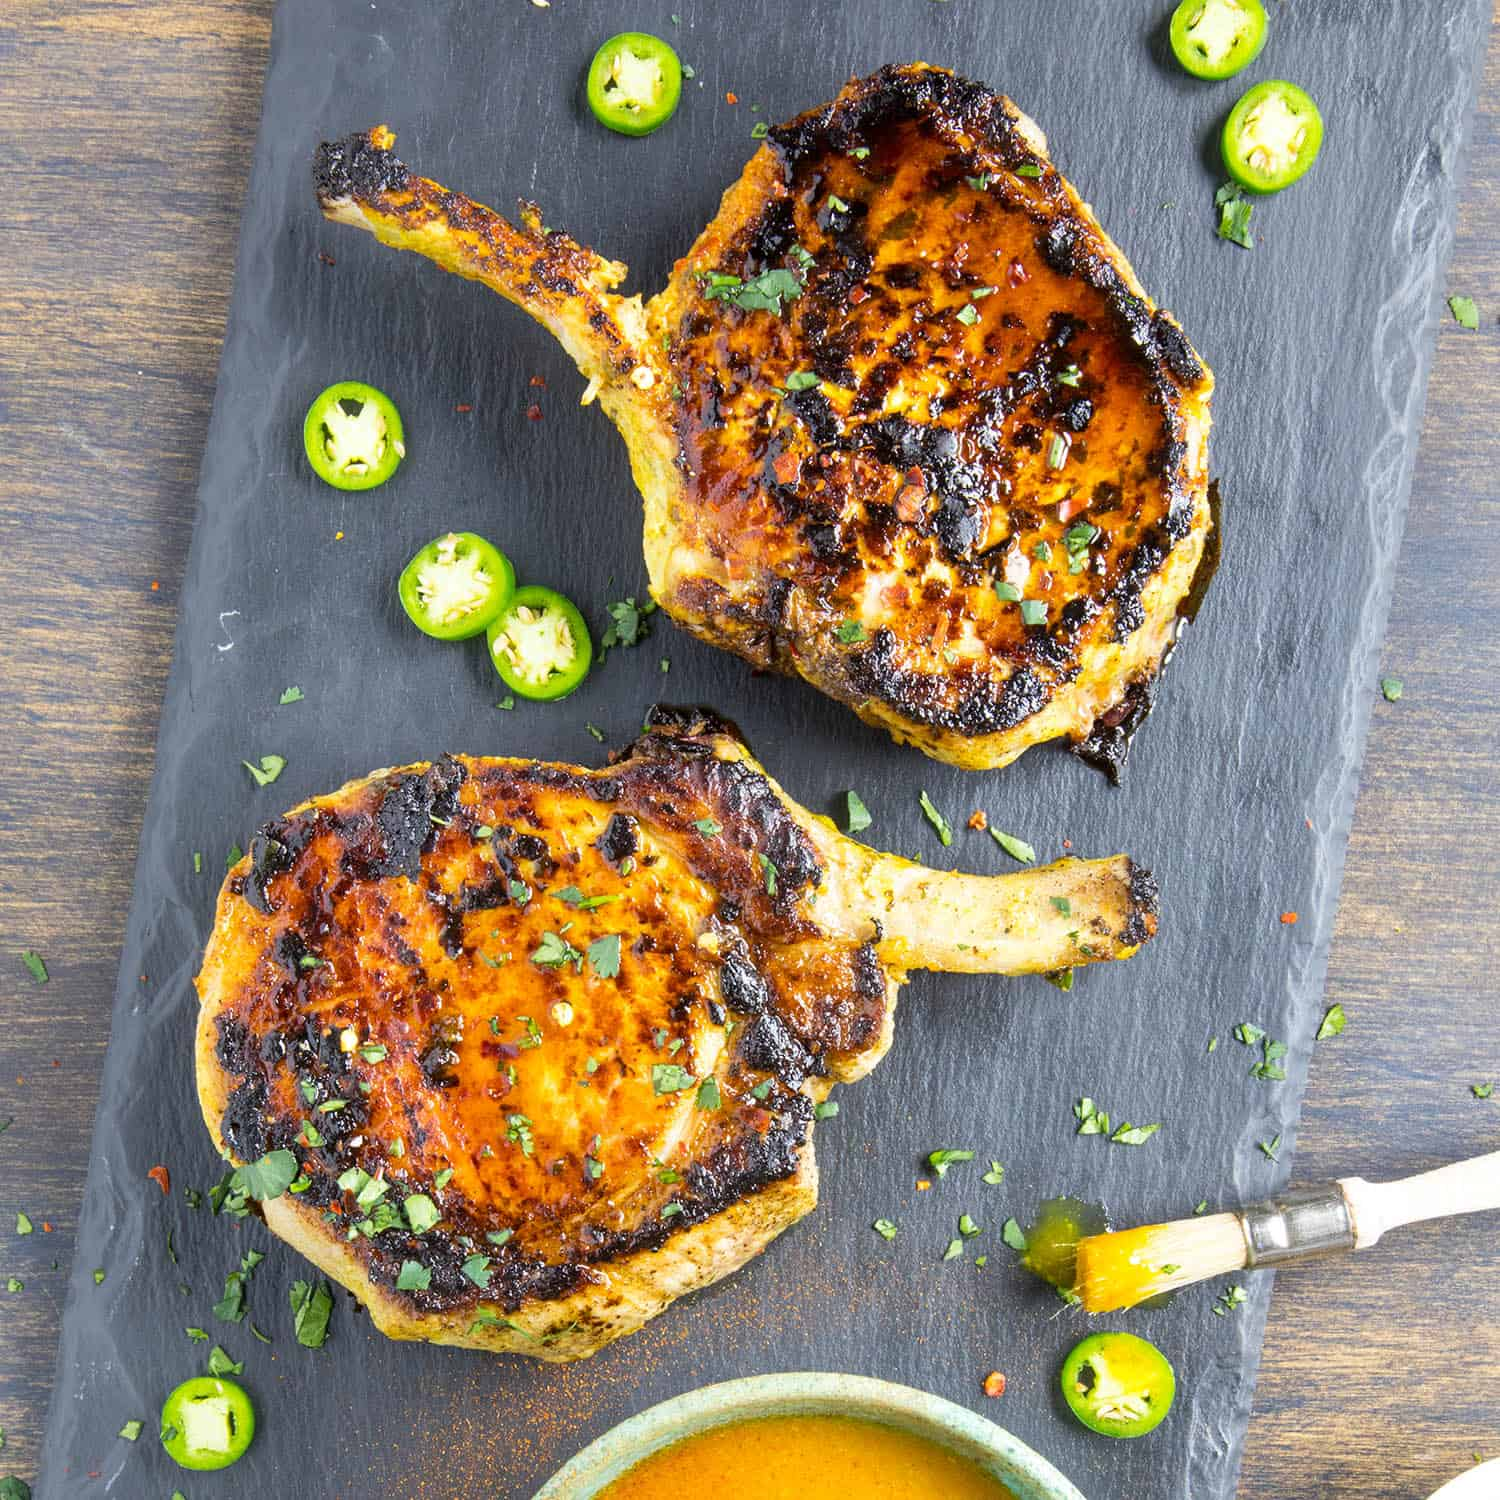 Grilled Pork Chops With Carolina Mustard BBQ Sauce